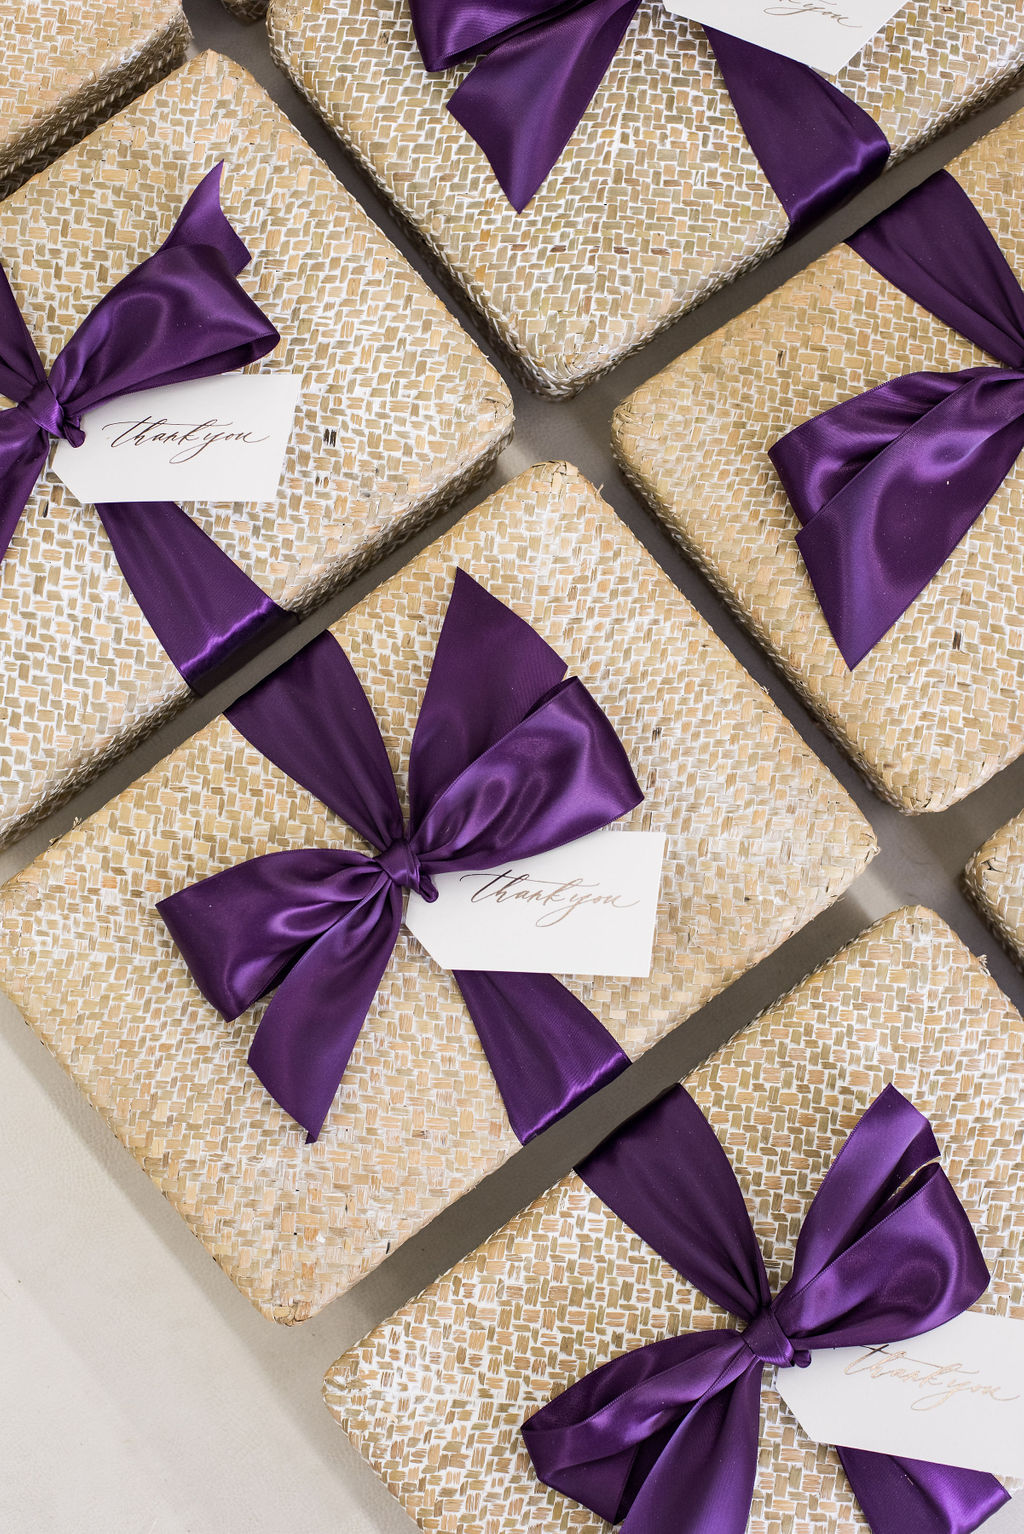 virtual-event-gift-baskets